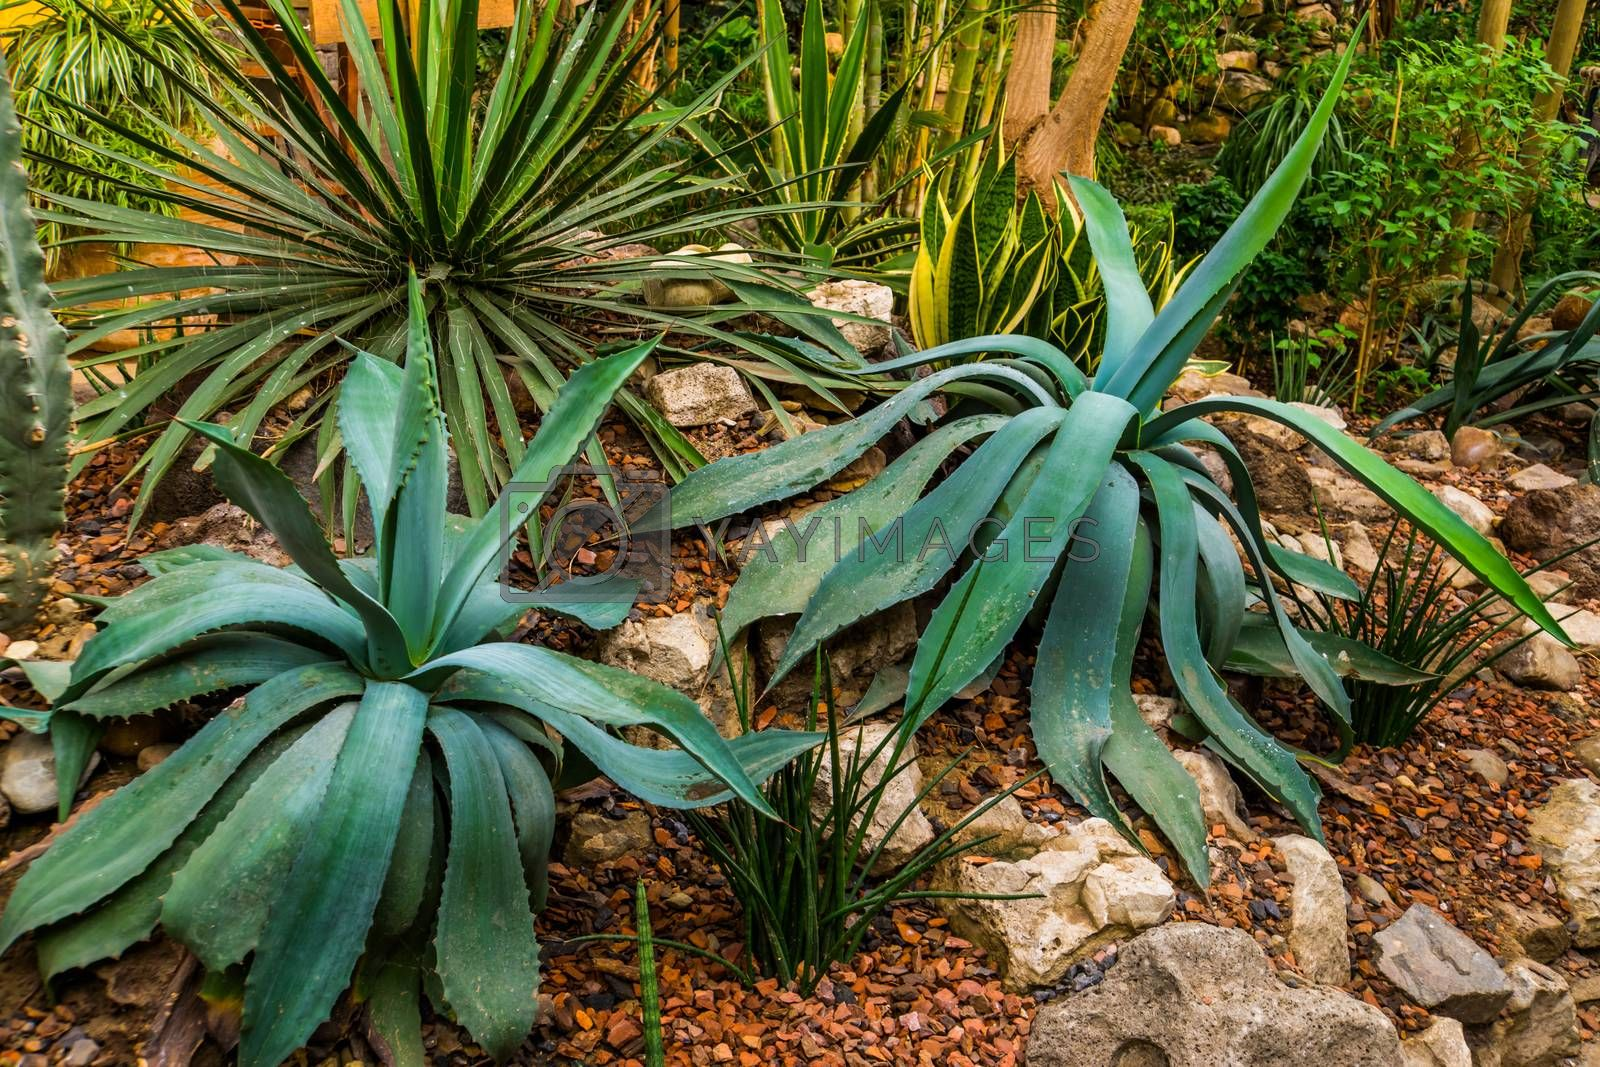 two agave plants in a tropical garden, popular decorative tropical plants from America by charlotte Bleijenberg